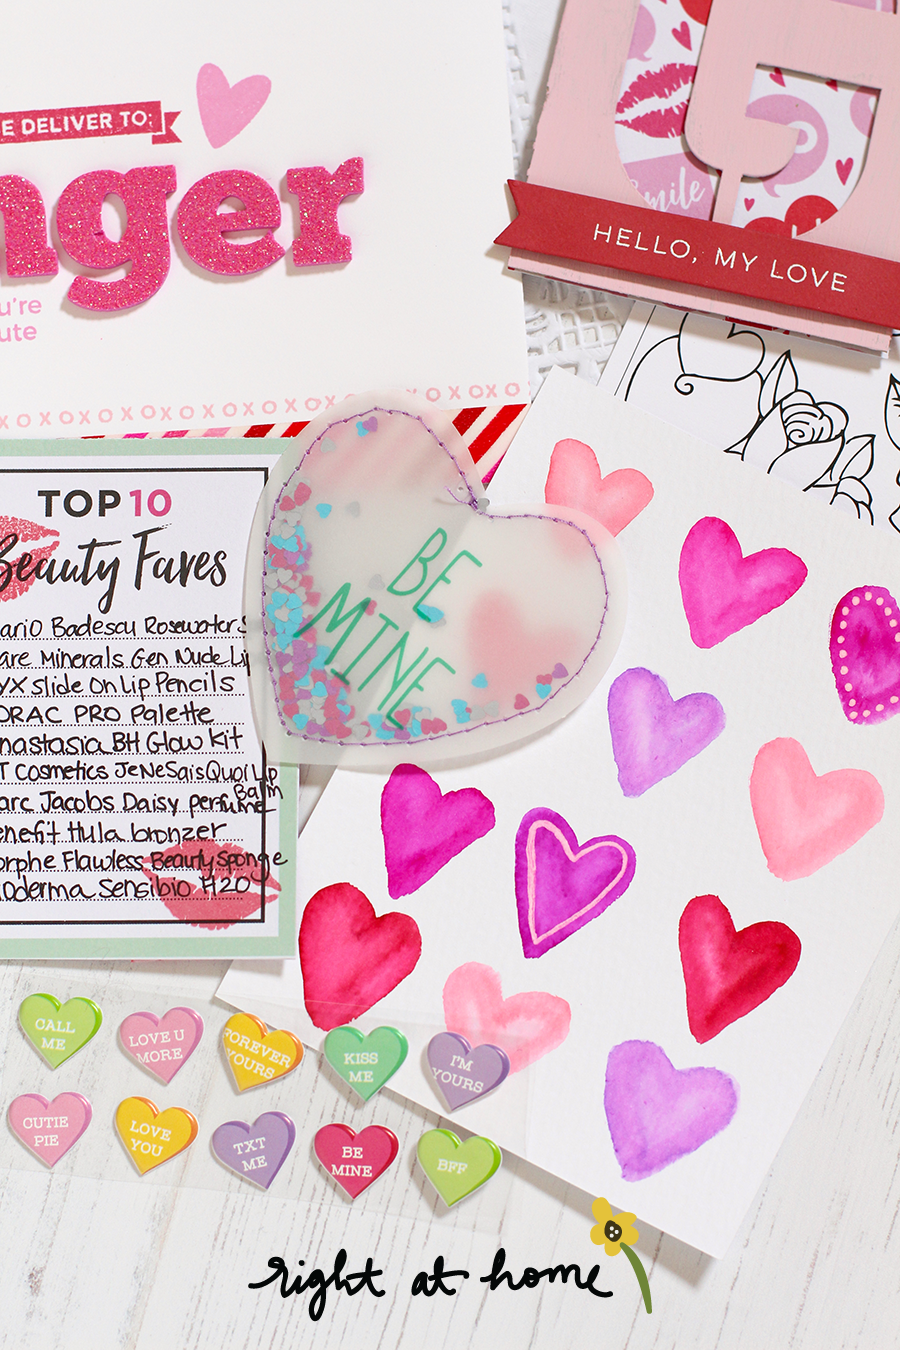 Valentine's Day Happy Mail Swap Content Ideas by Nicole // rightathomeshop.com/blog